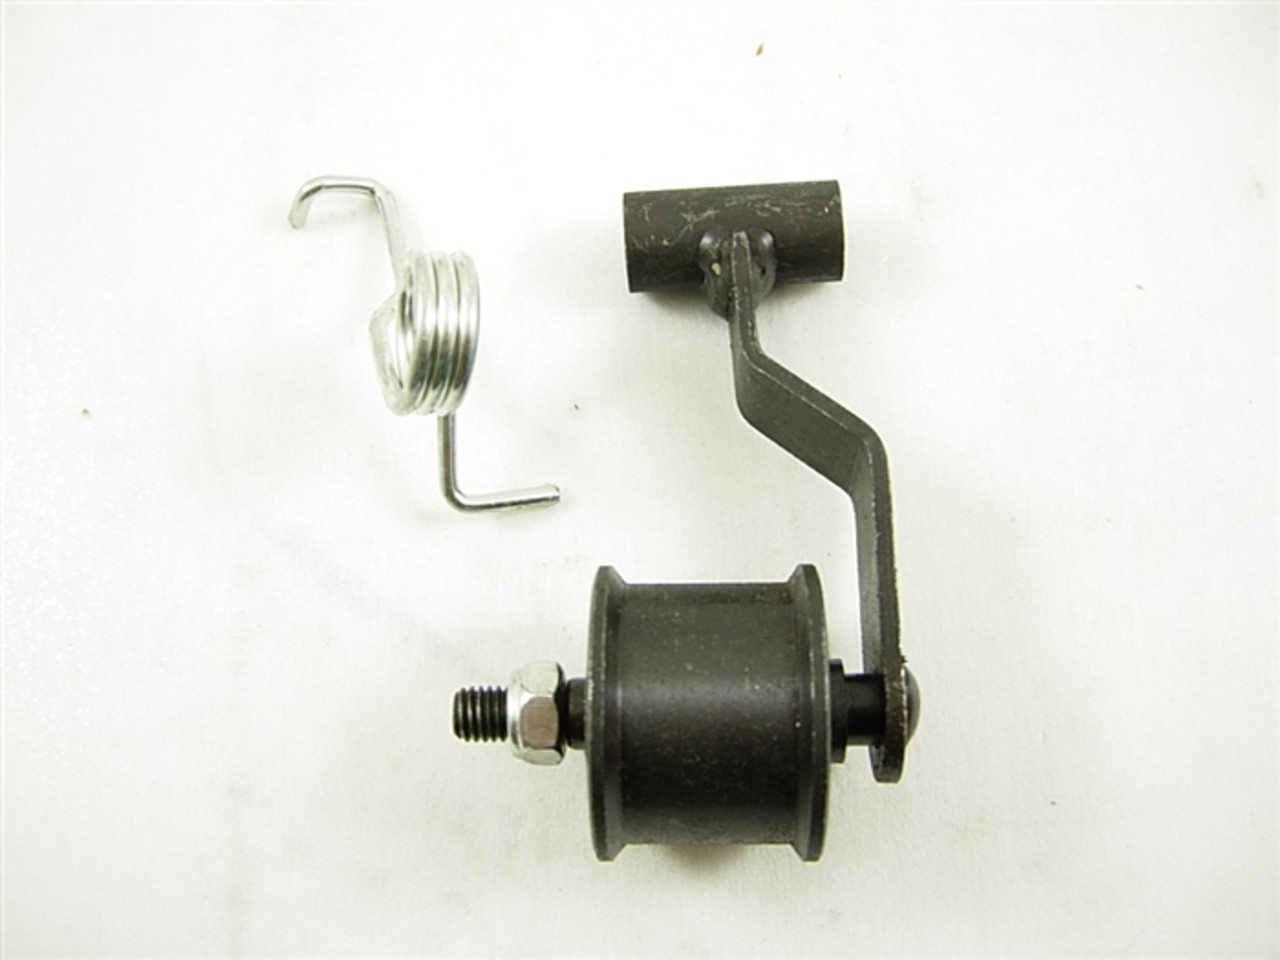 CHAIN TENSIONER & SPRING/ROLLER (LEFT SIDE) 12834-A158-8